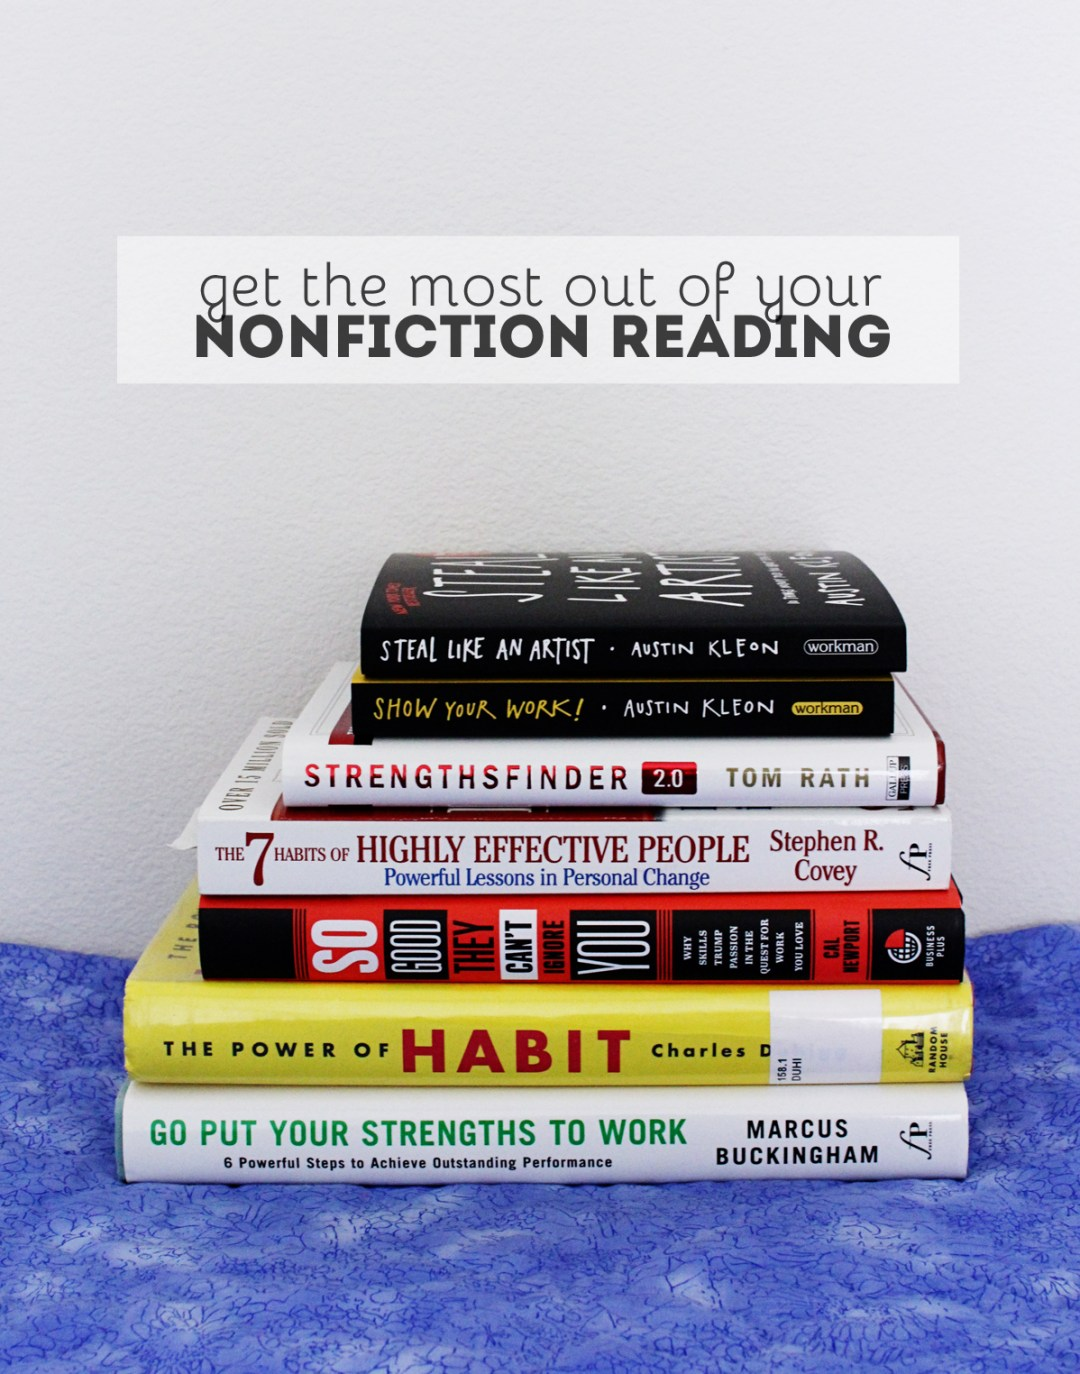 Strategies for Getting the Most Out of Nonfiction Books - www.randomolive.com